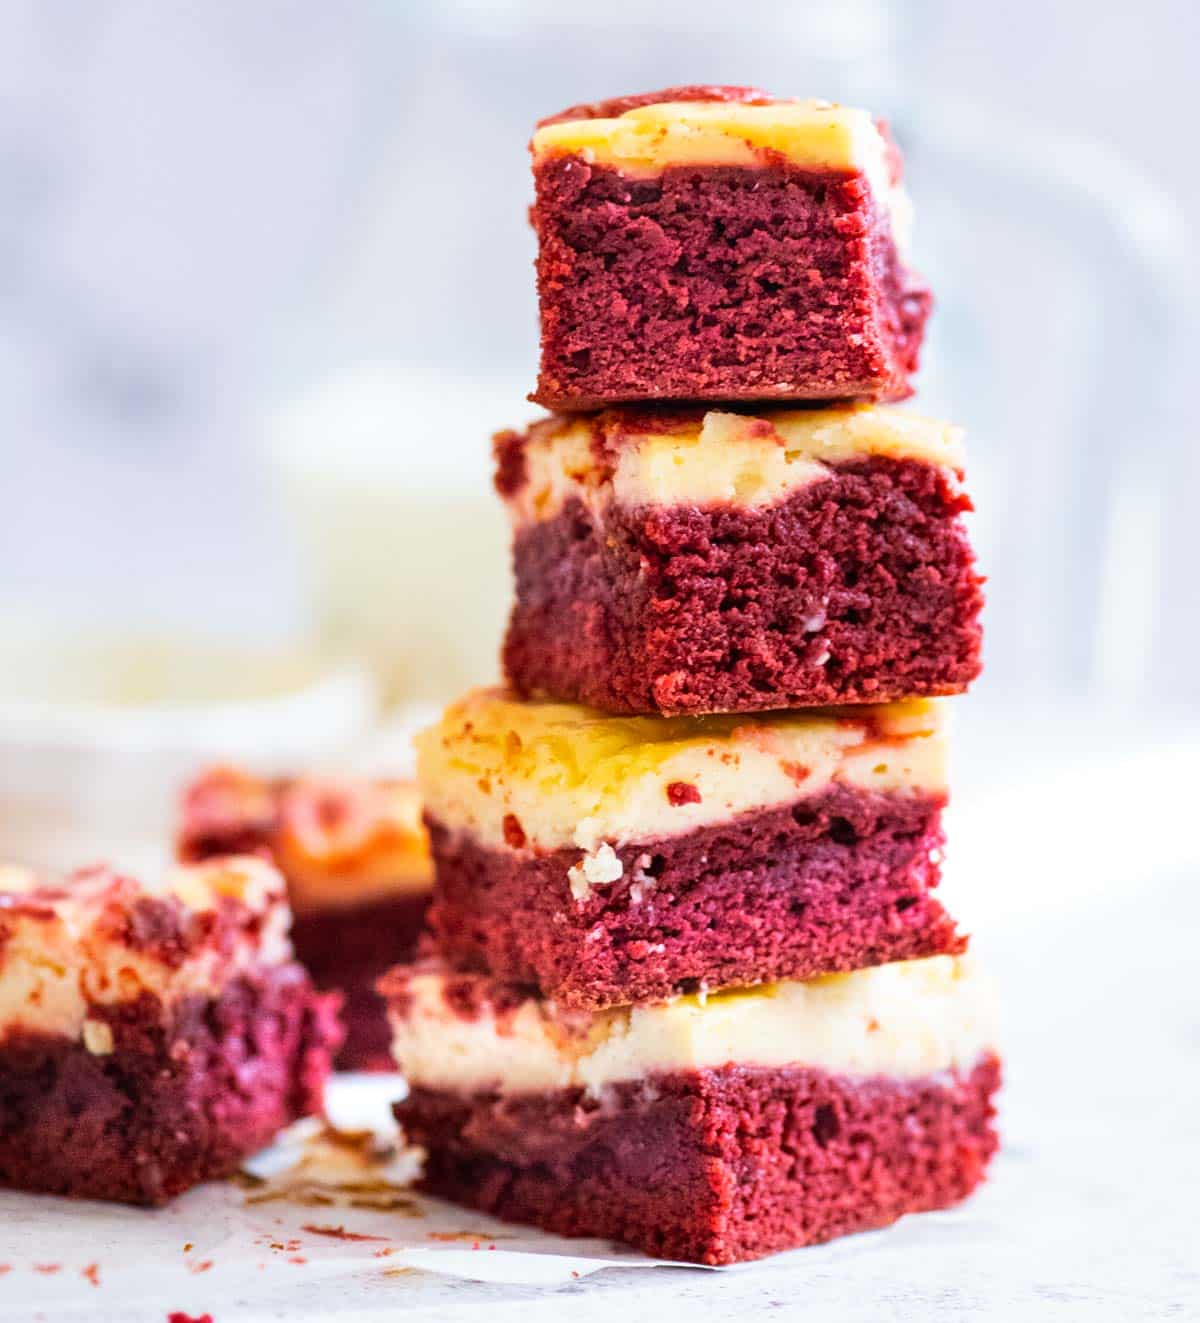 A stack of four red velvet and cheesecake brownies in the foreground, a milk jug in the background